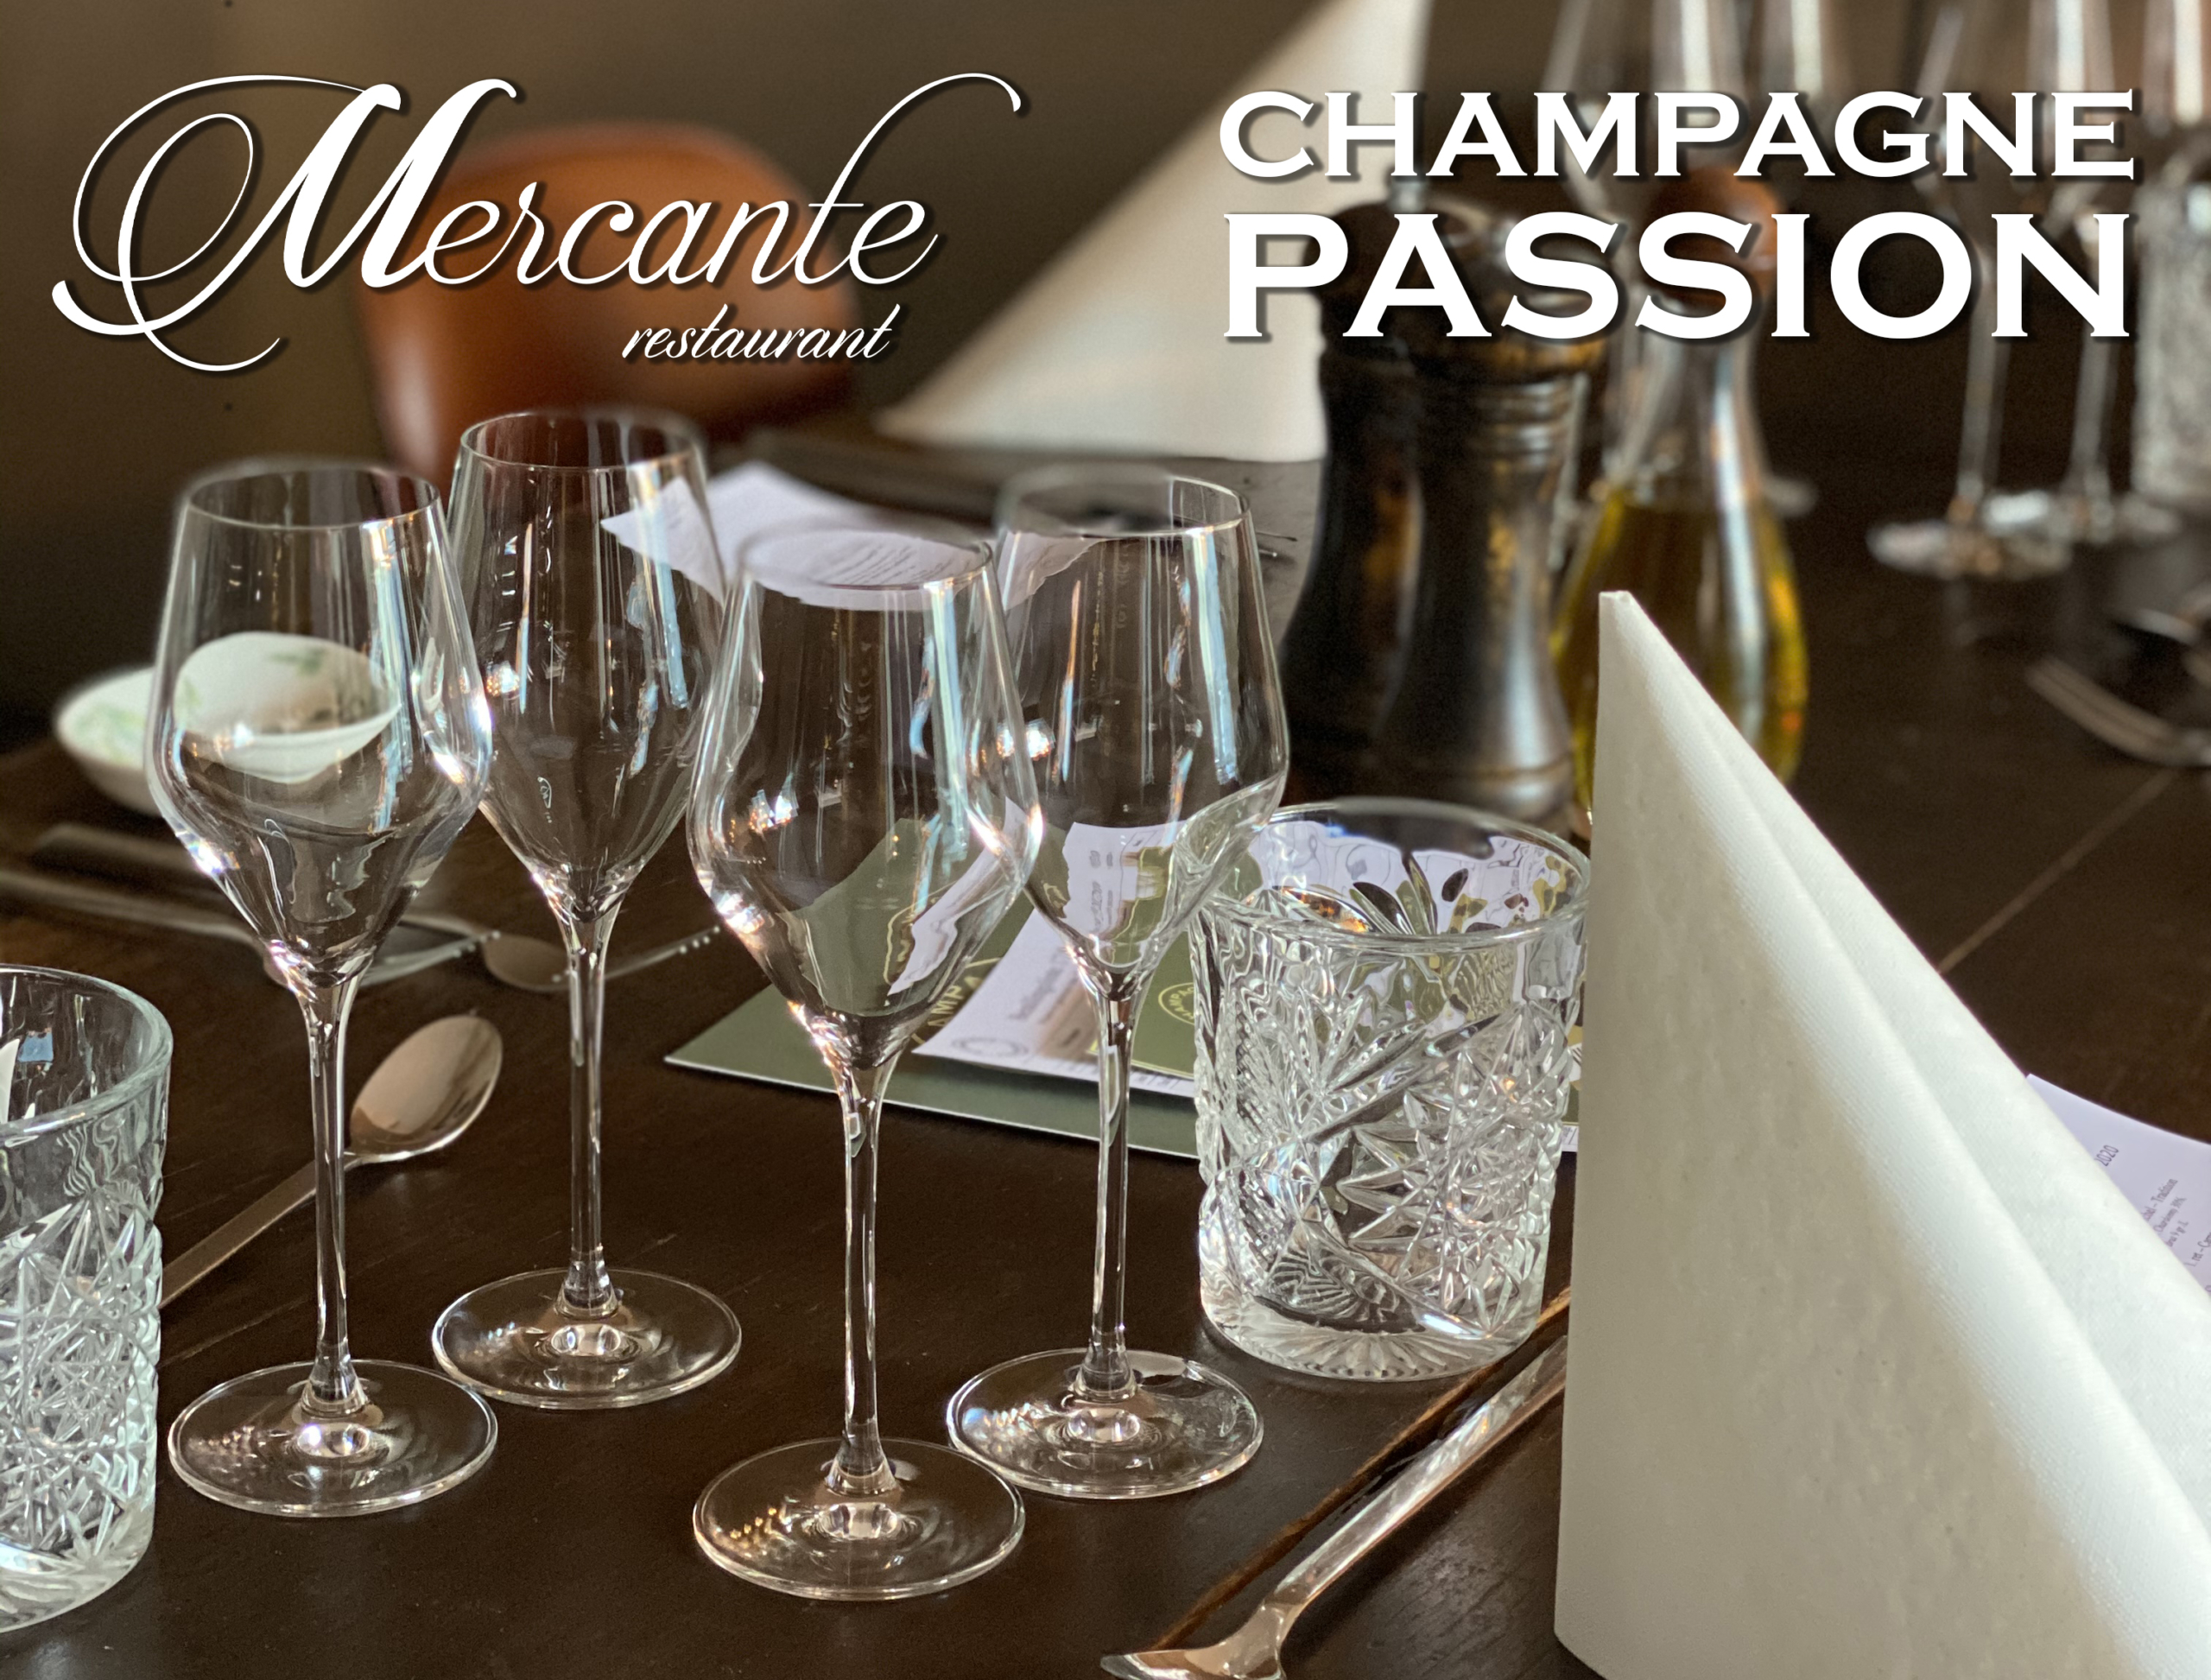 champagnemiddag, restaurant mercante, champagne passion